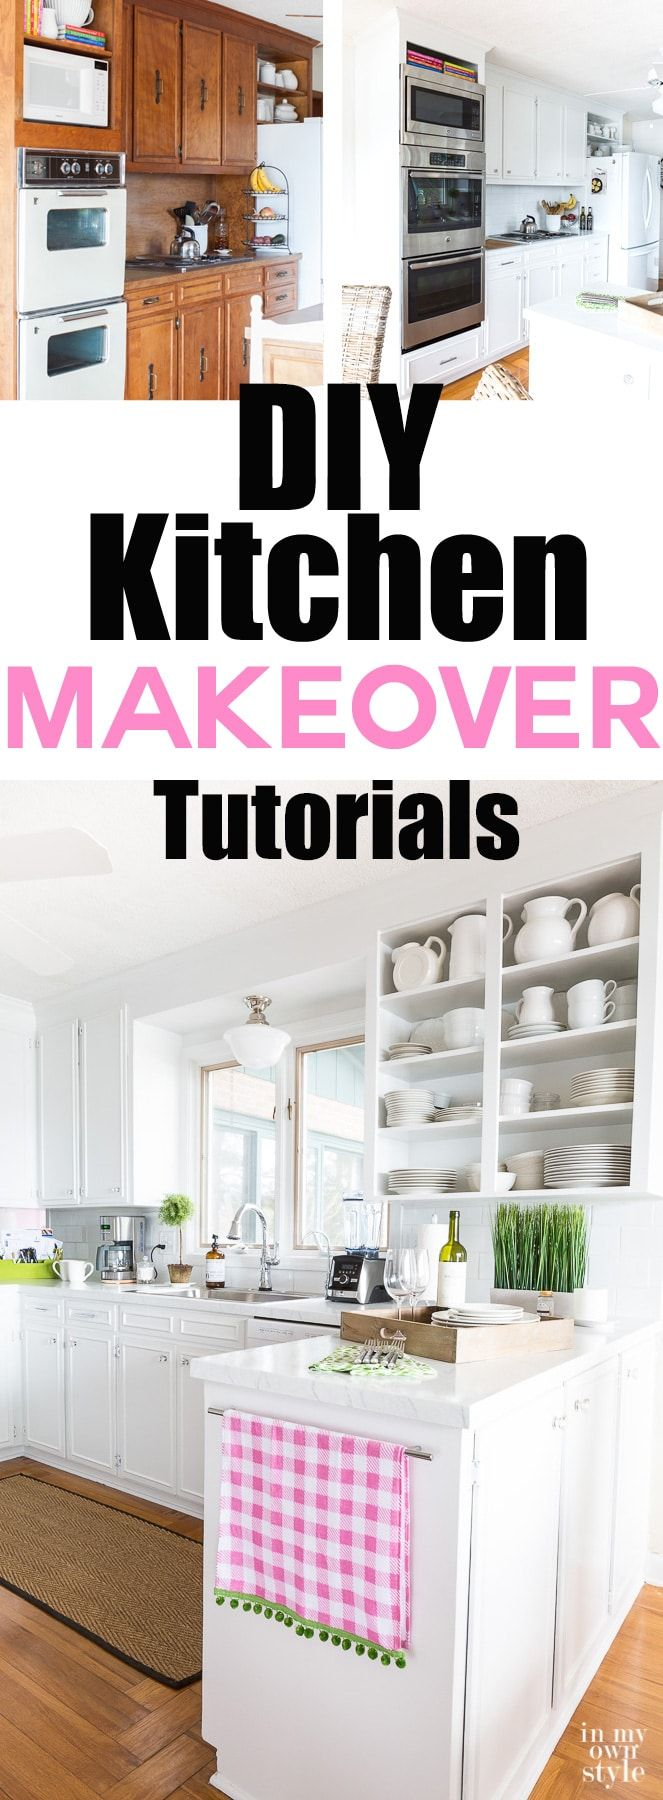 DIY Budget Kitchen Makeover: Access all the tutorials, tips and full budget breakdown to help you transform your kitchen.